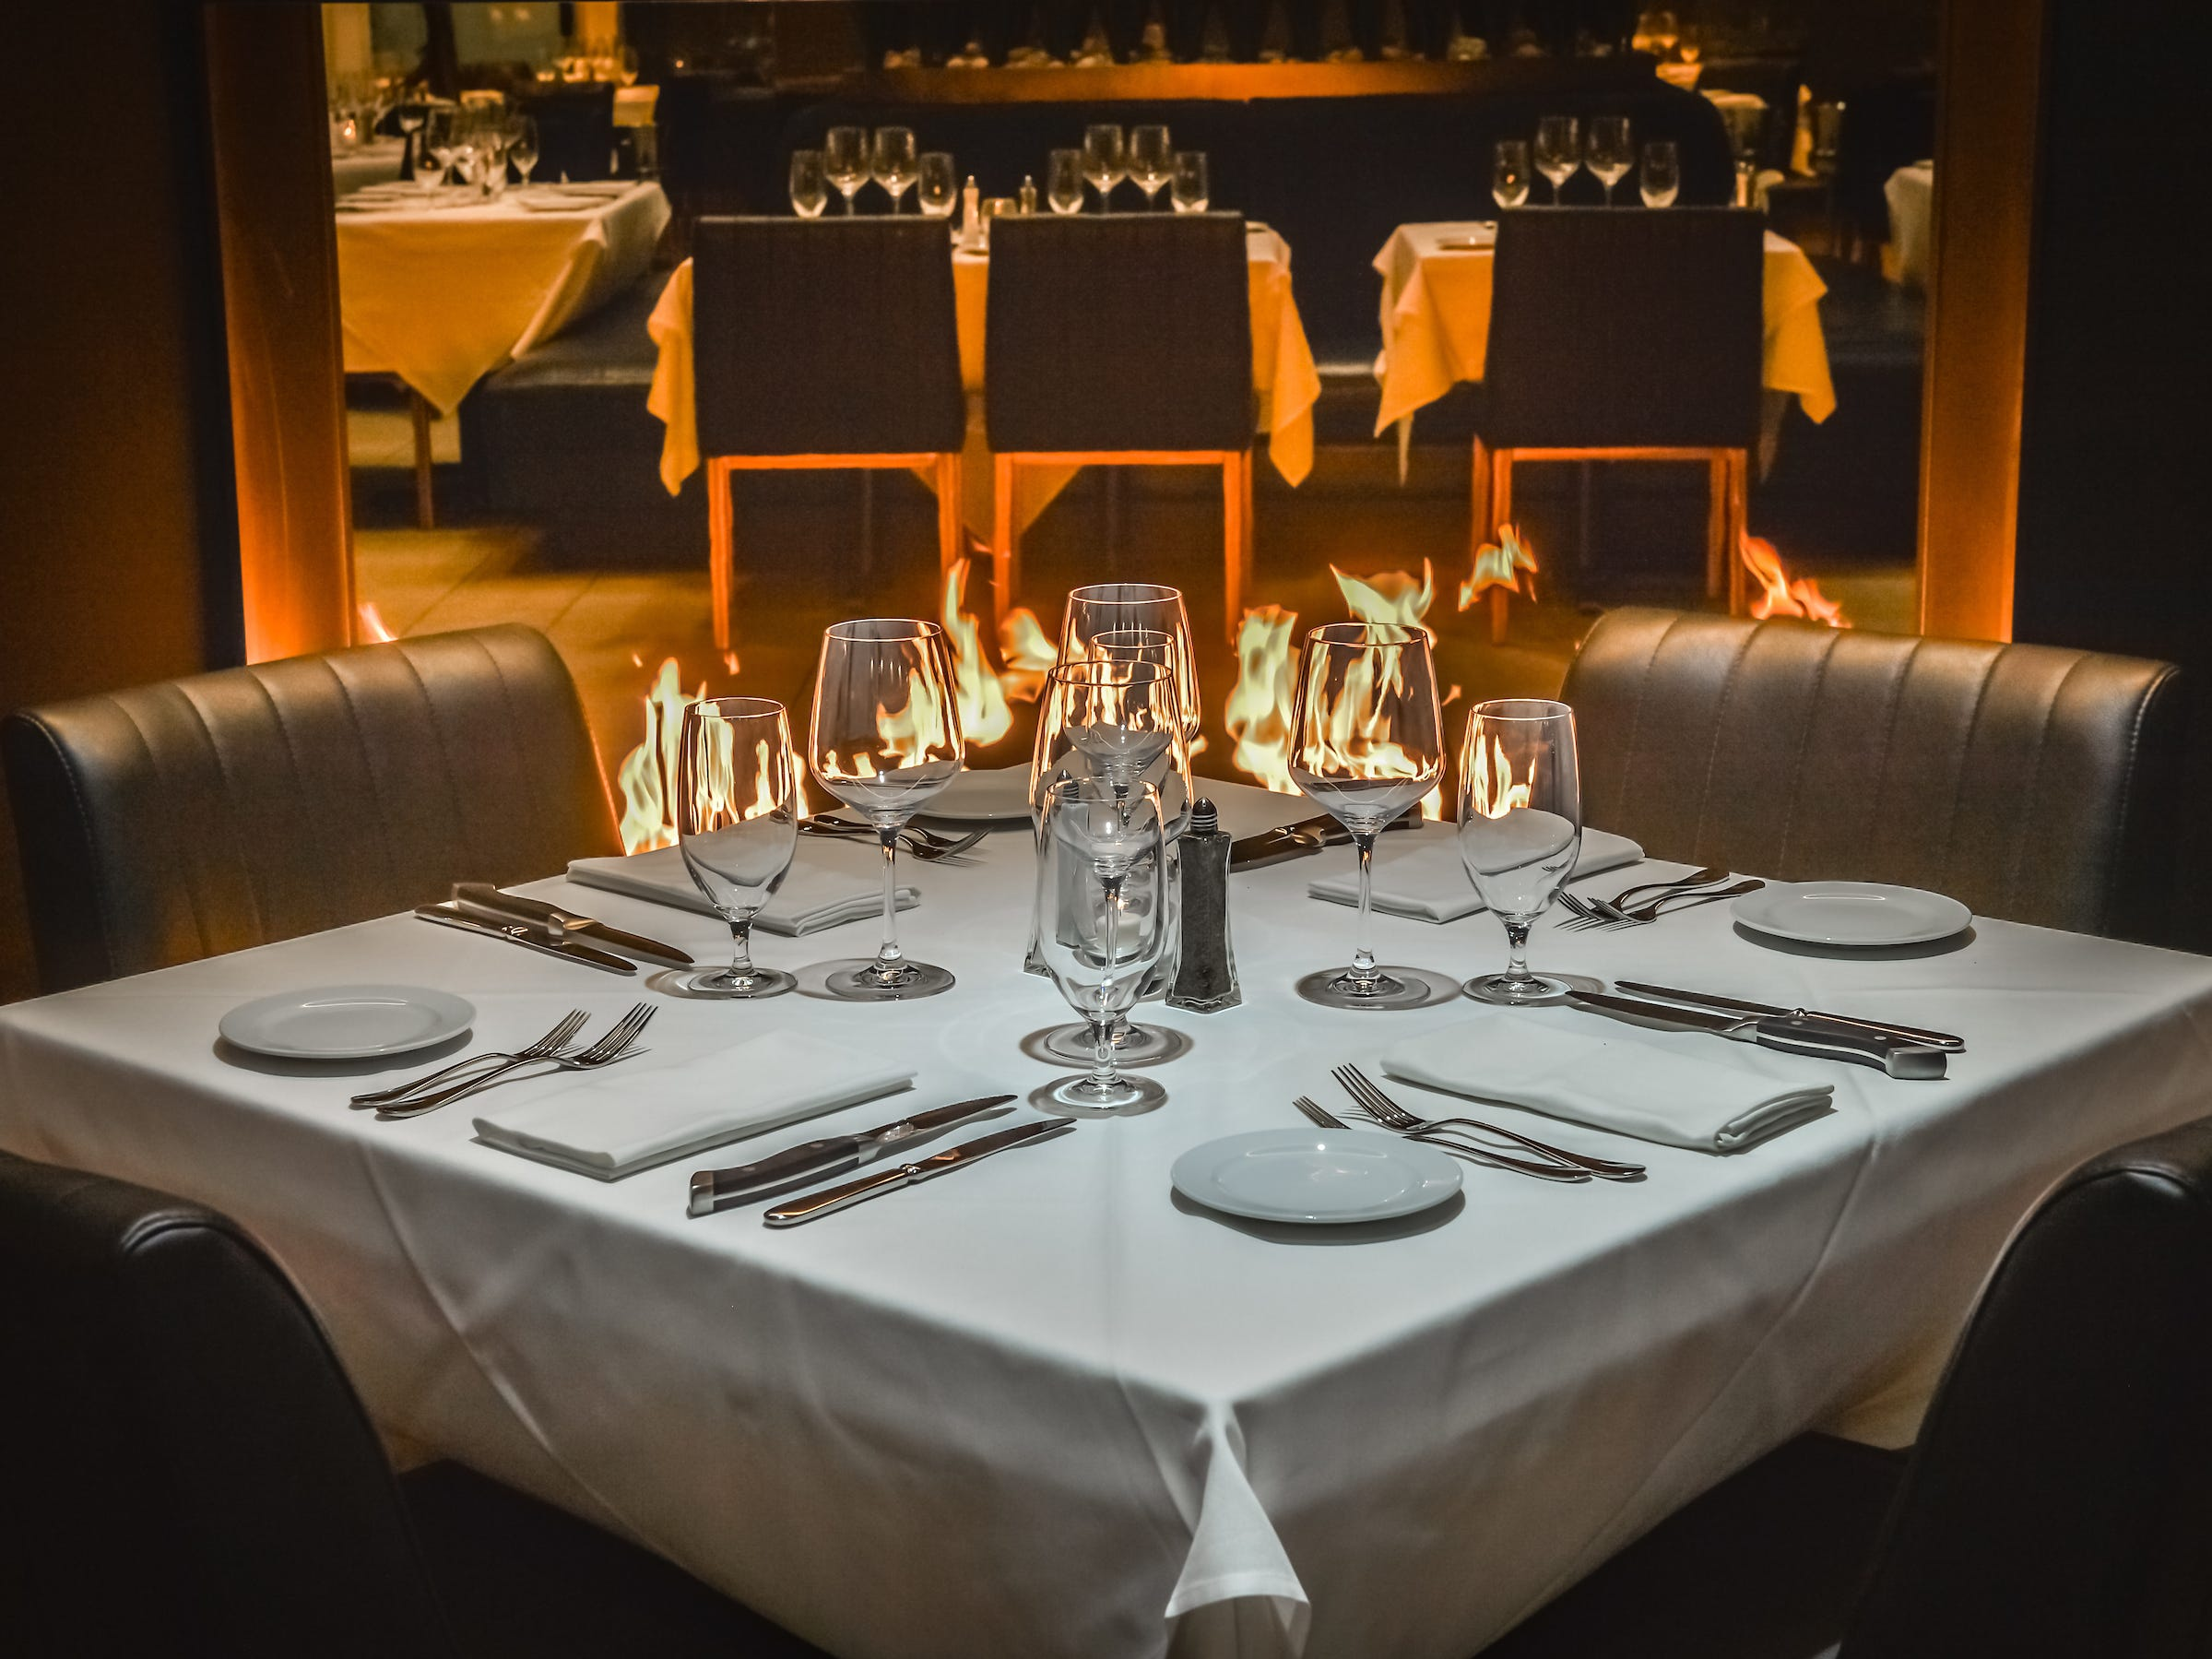 A table is ready for diners inside Ocean 44 in Scottsdale.